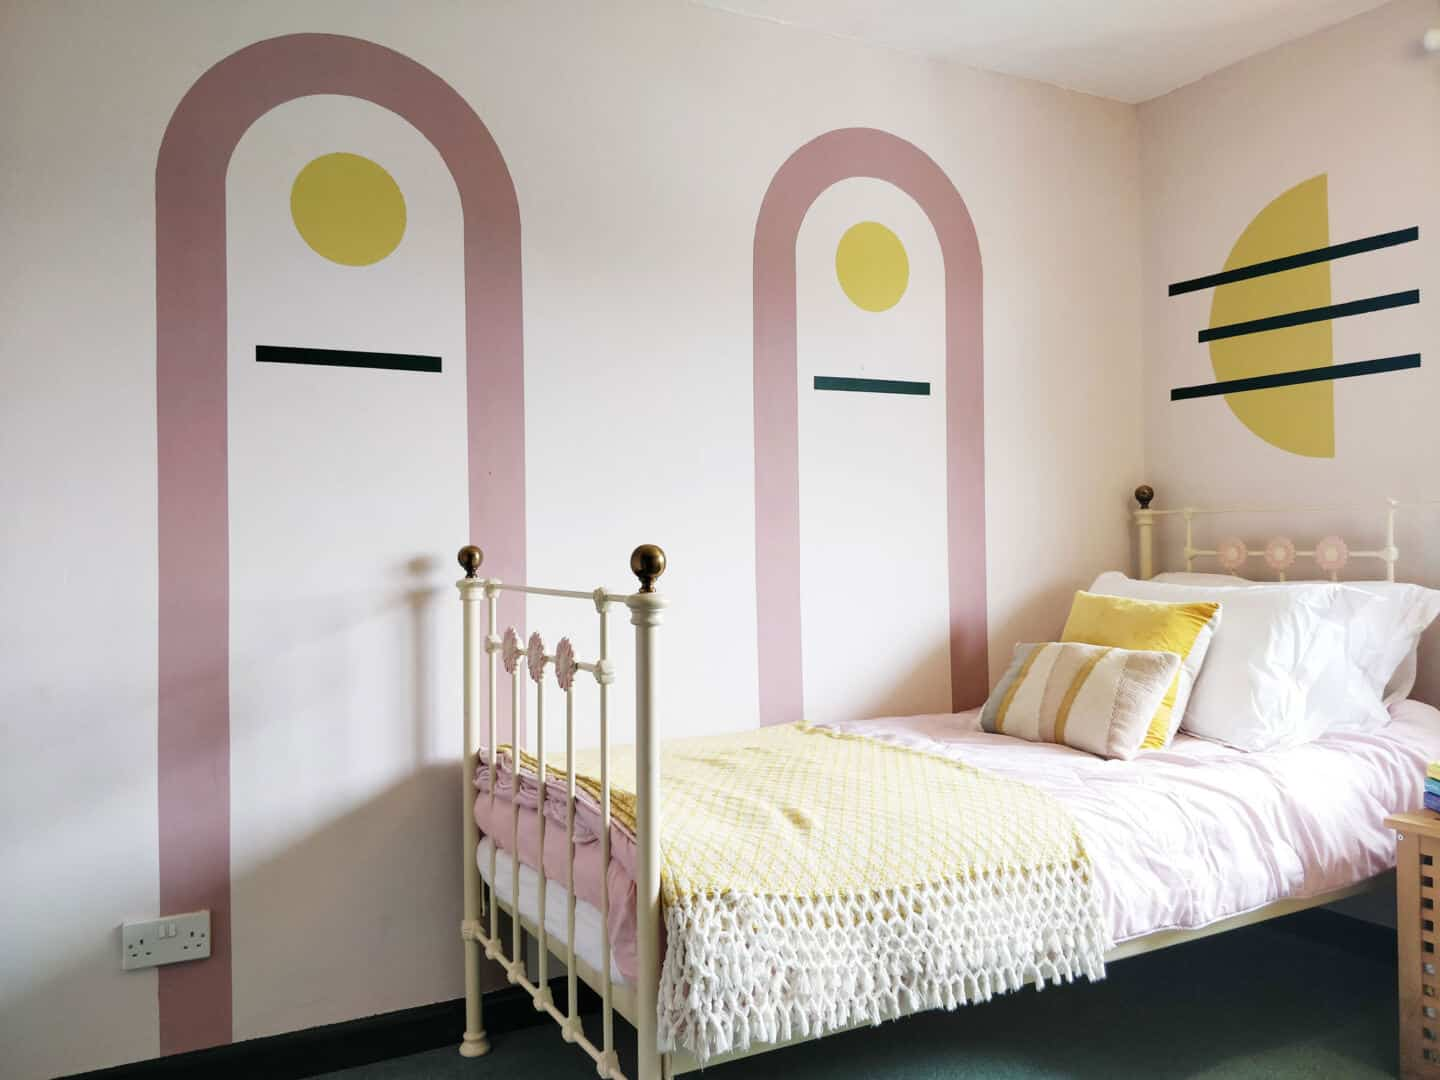 Bedroom featuring a DIY Painted Arch Accent Wall